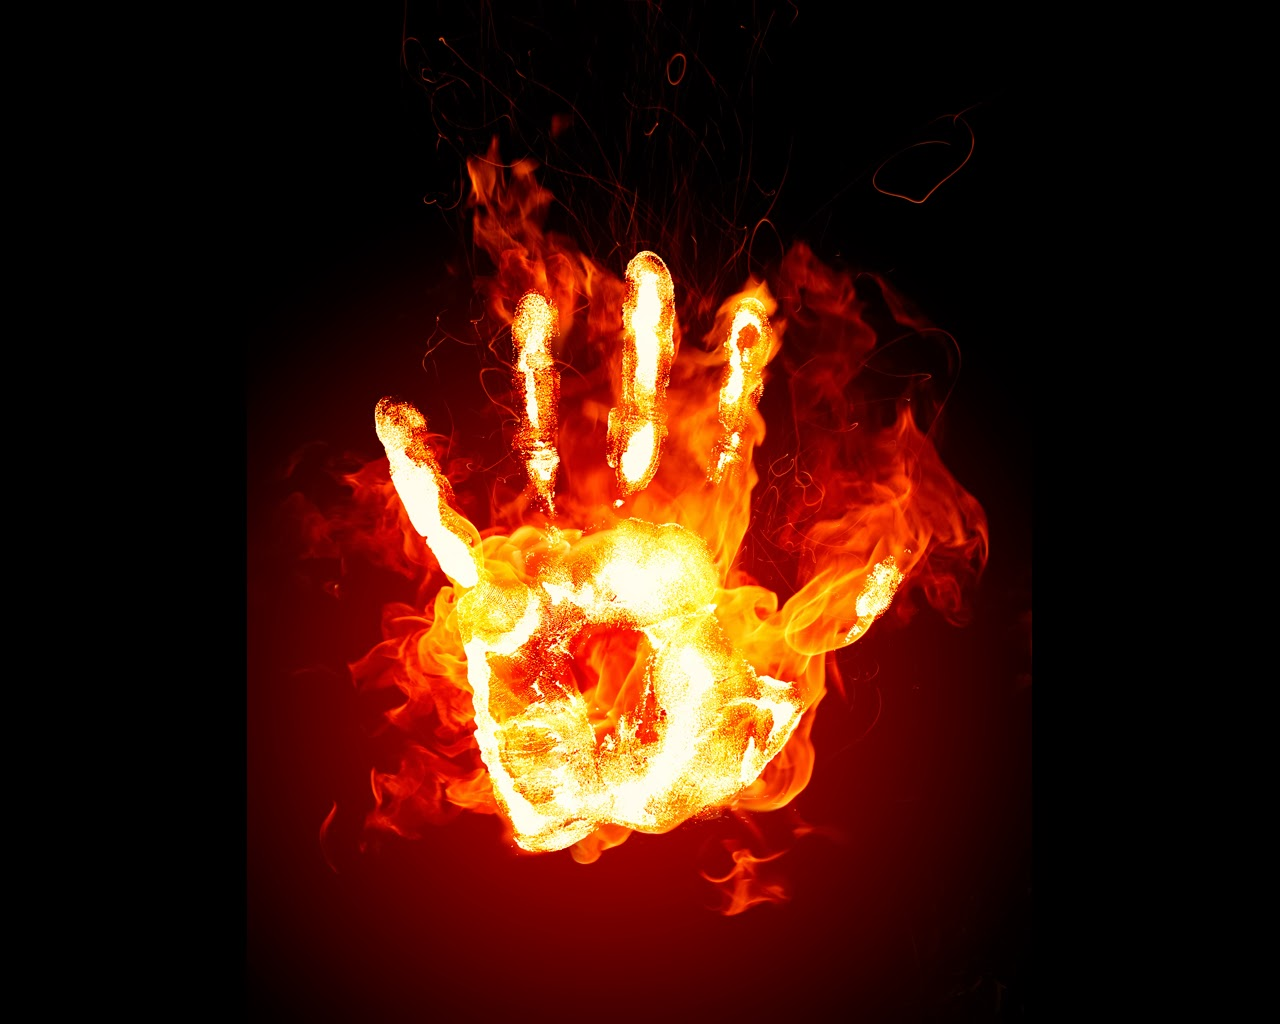 Fire hand wallpapers